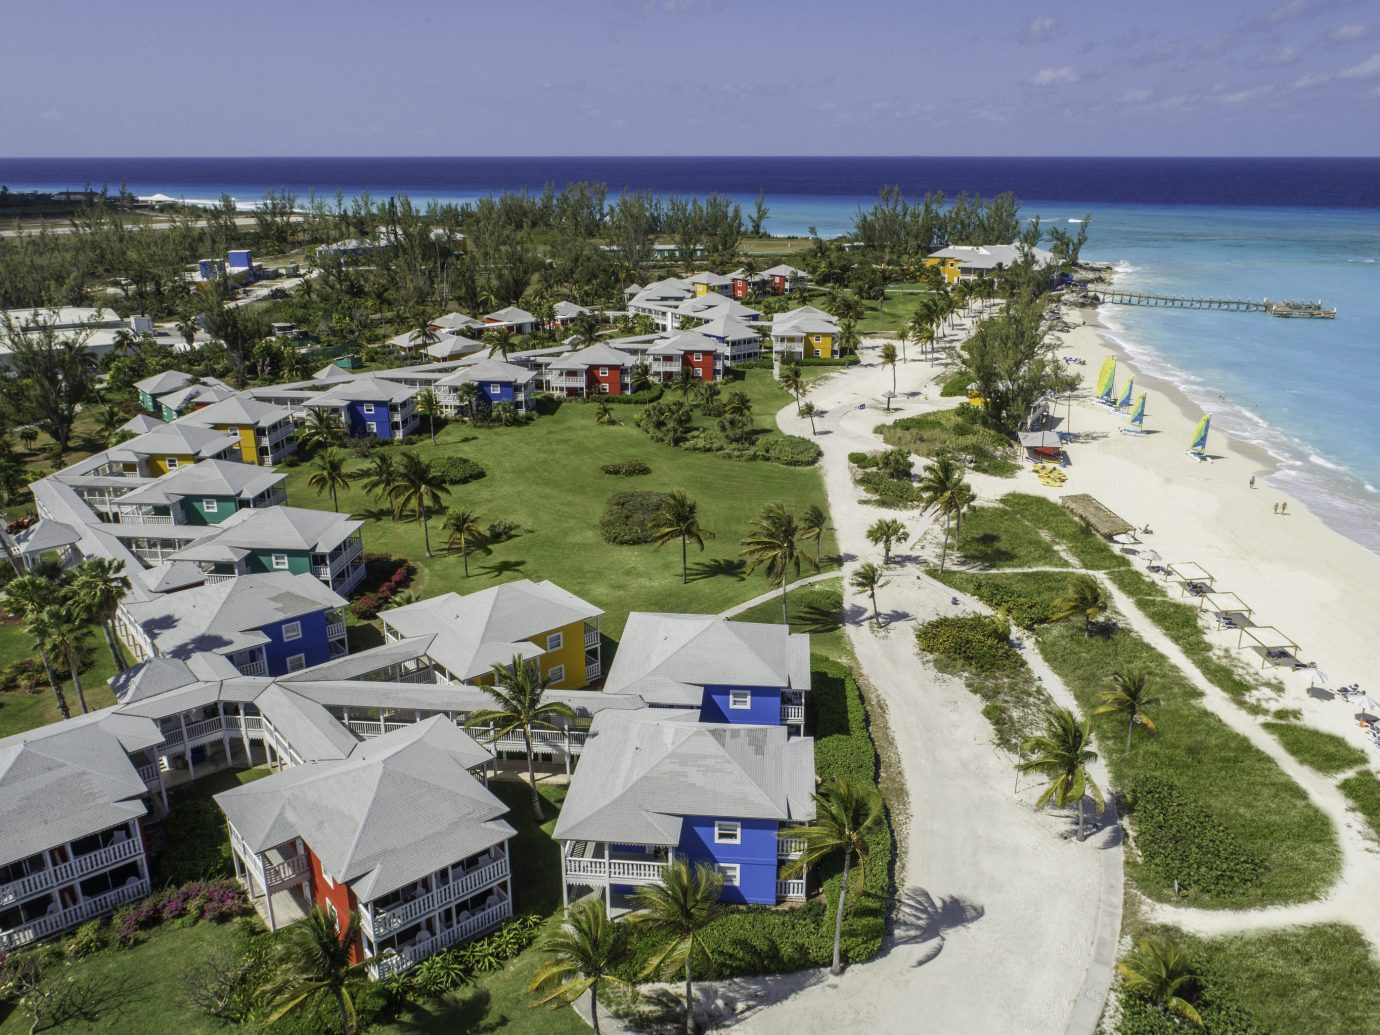 Aerial view of Club Med Columbus Isle